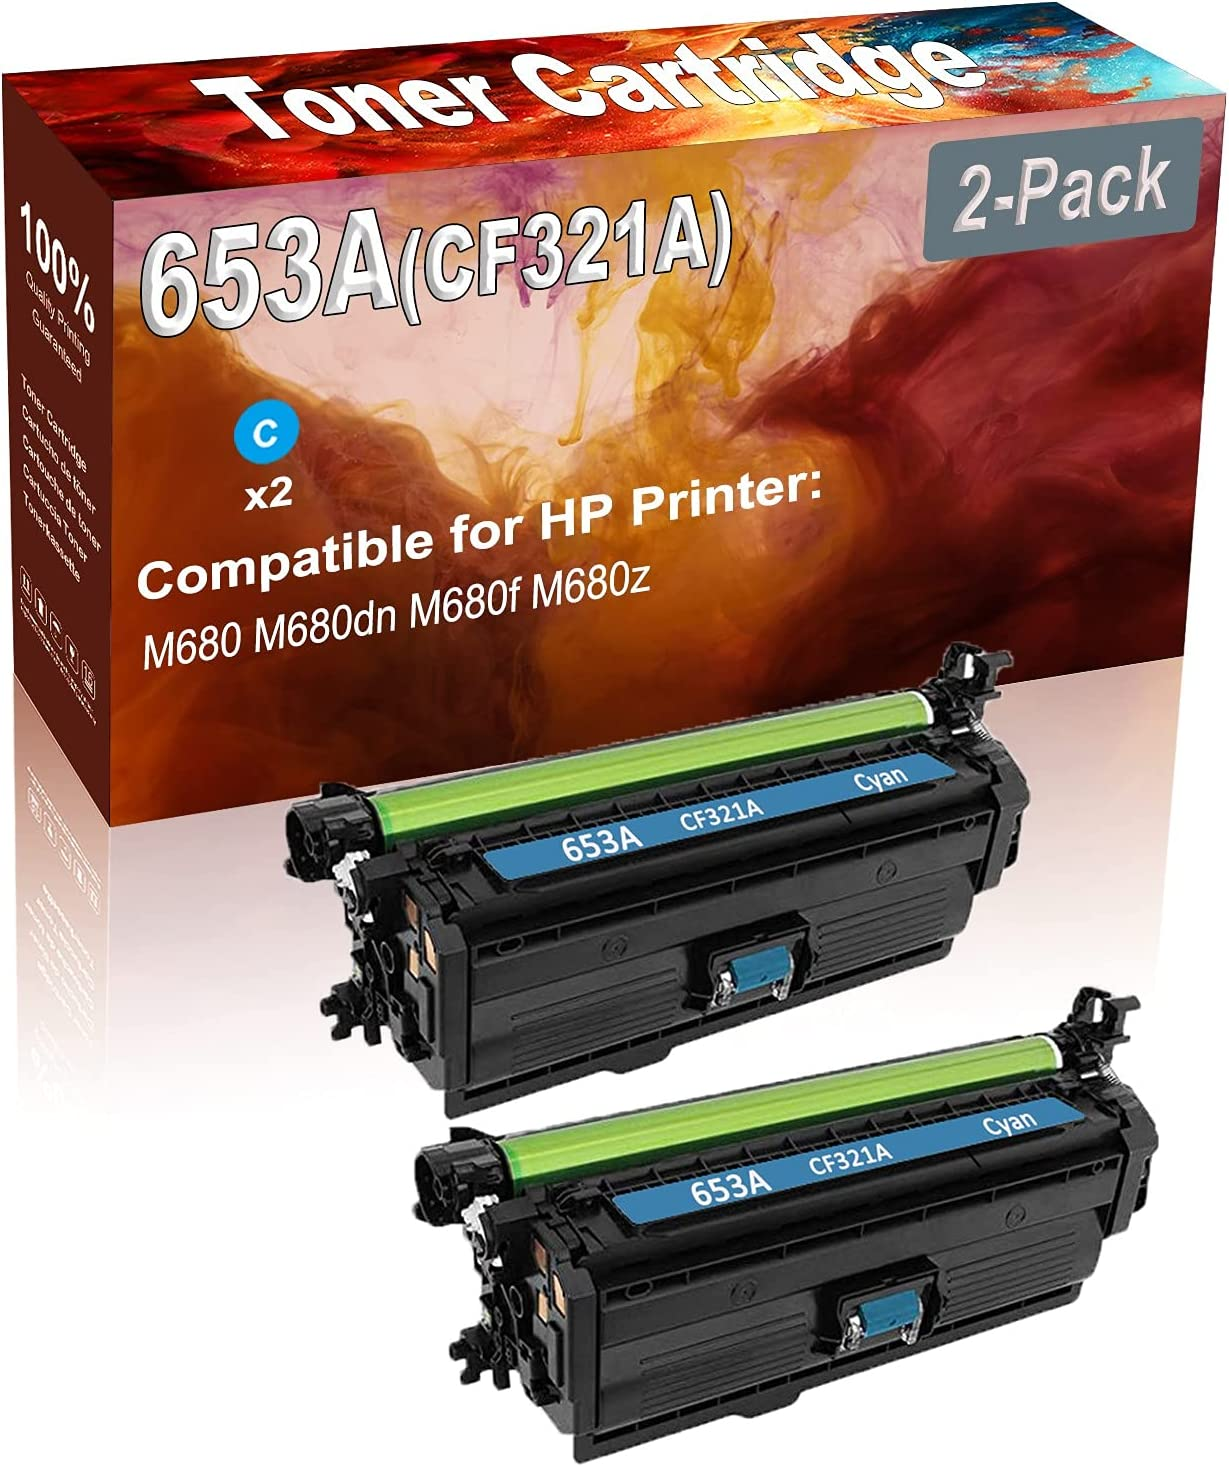 2-Pack (Cyan) Compatible M680 M680dn M680f Laser Toner Cartridge (High Capacity) Replacement for HP 653A (CF321A) Printer Toner Cartridge